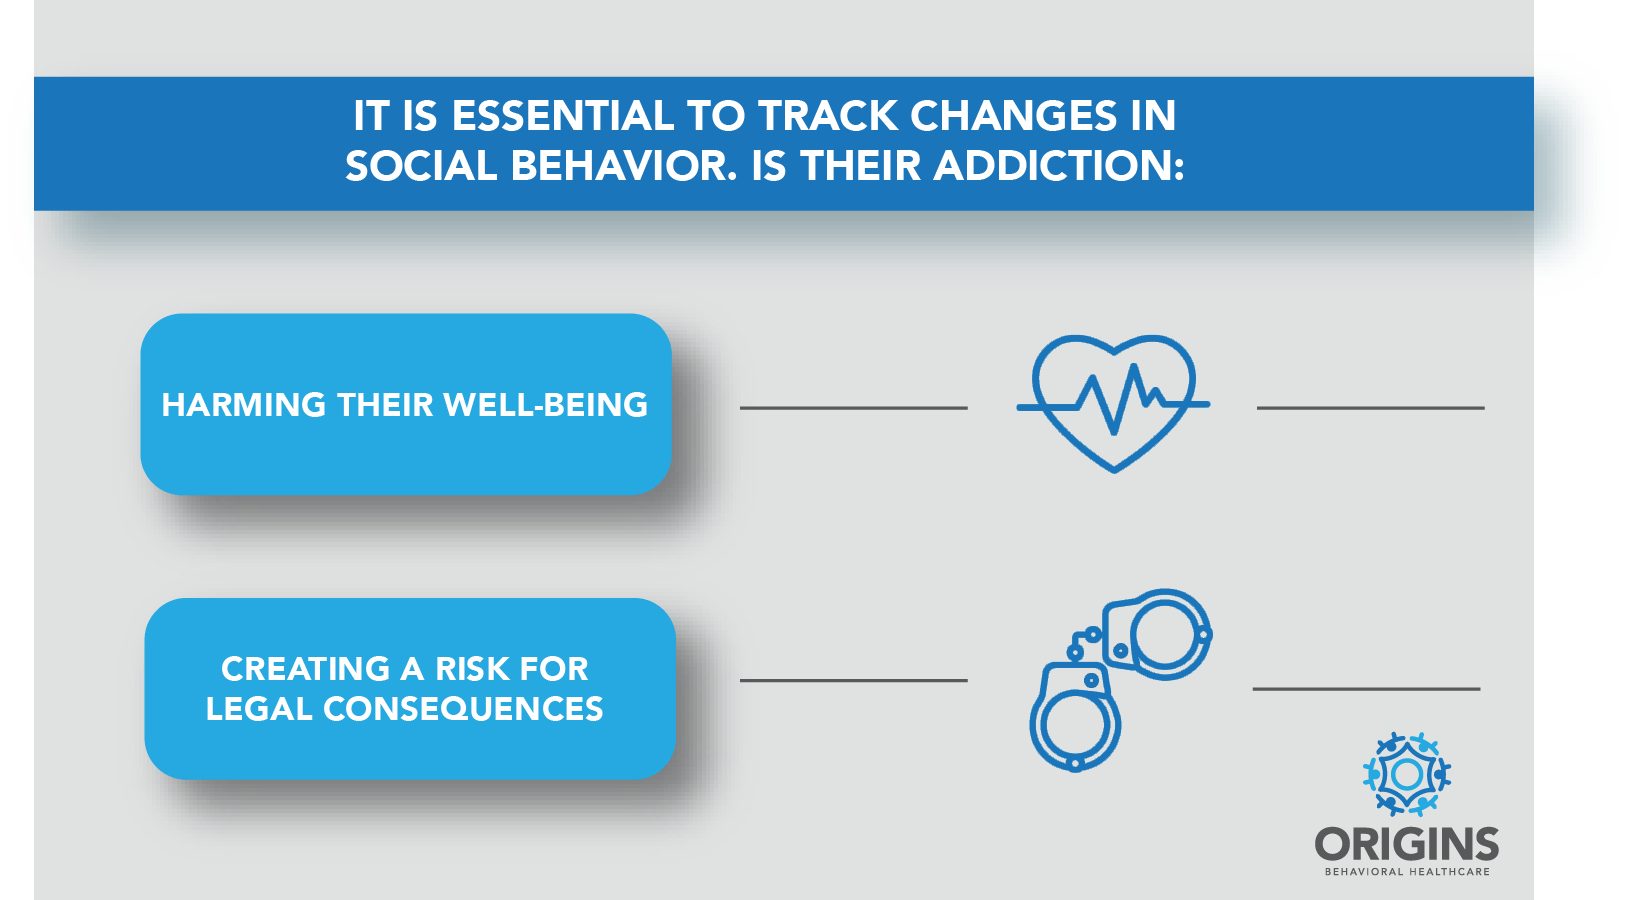 Changes in social behavior addiction